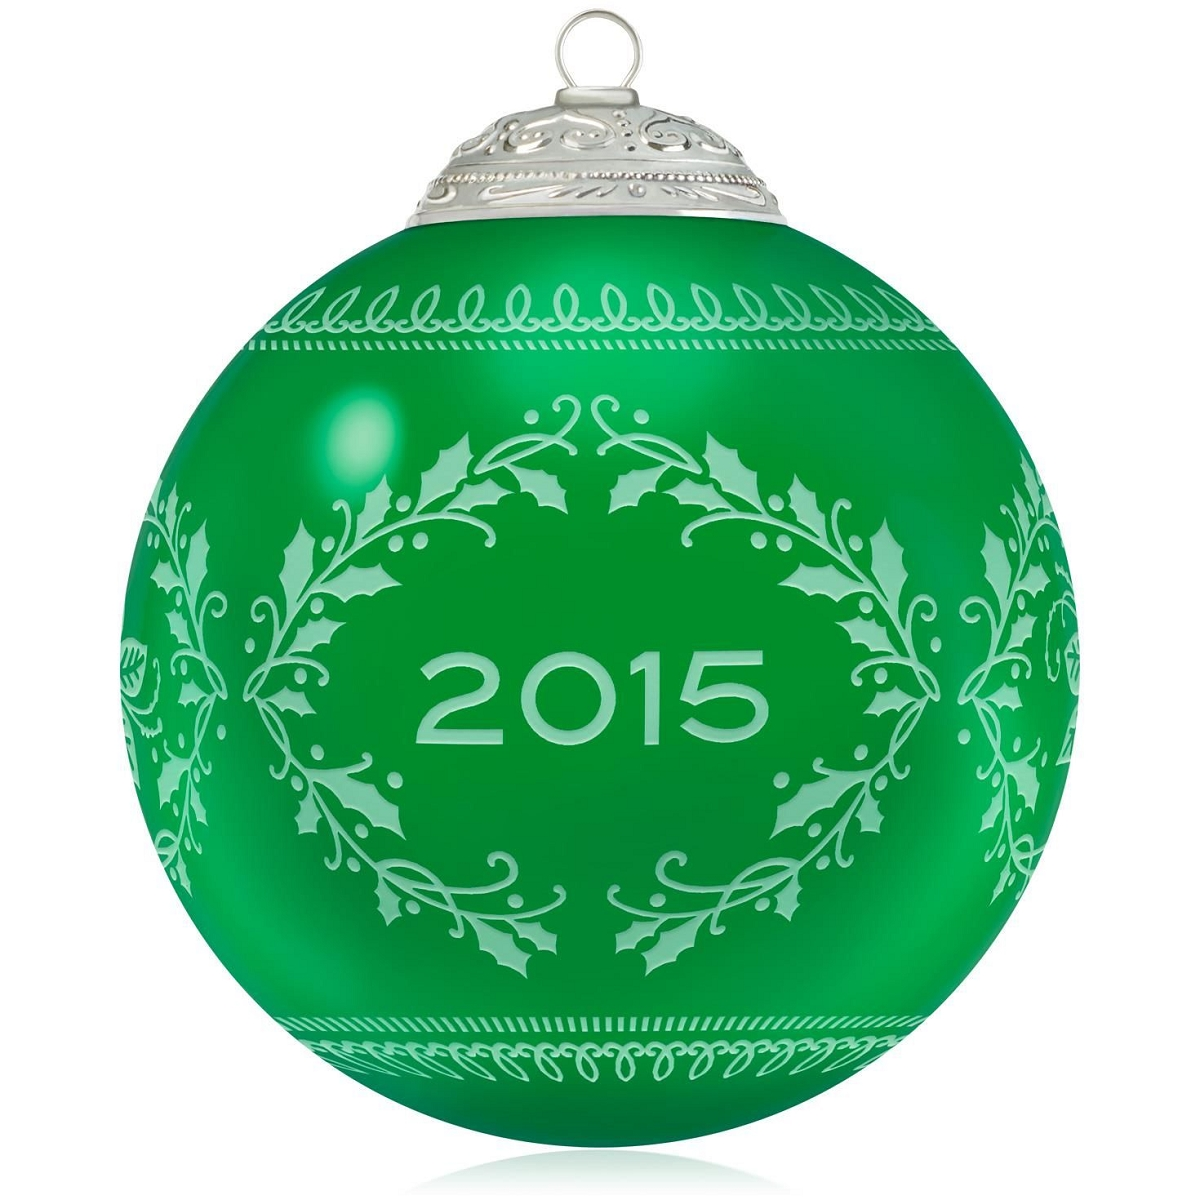 2015 Christmas Commemorative Ball Hallmark Keepsake